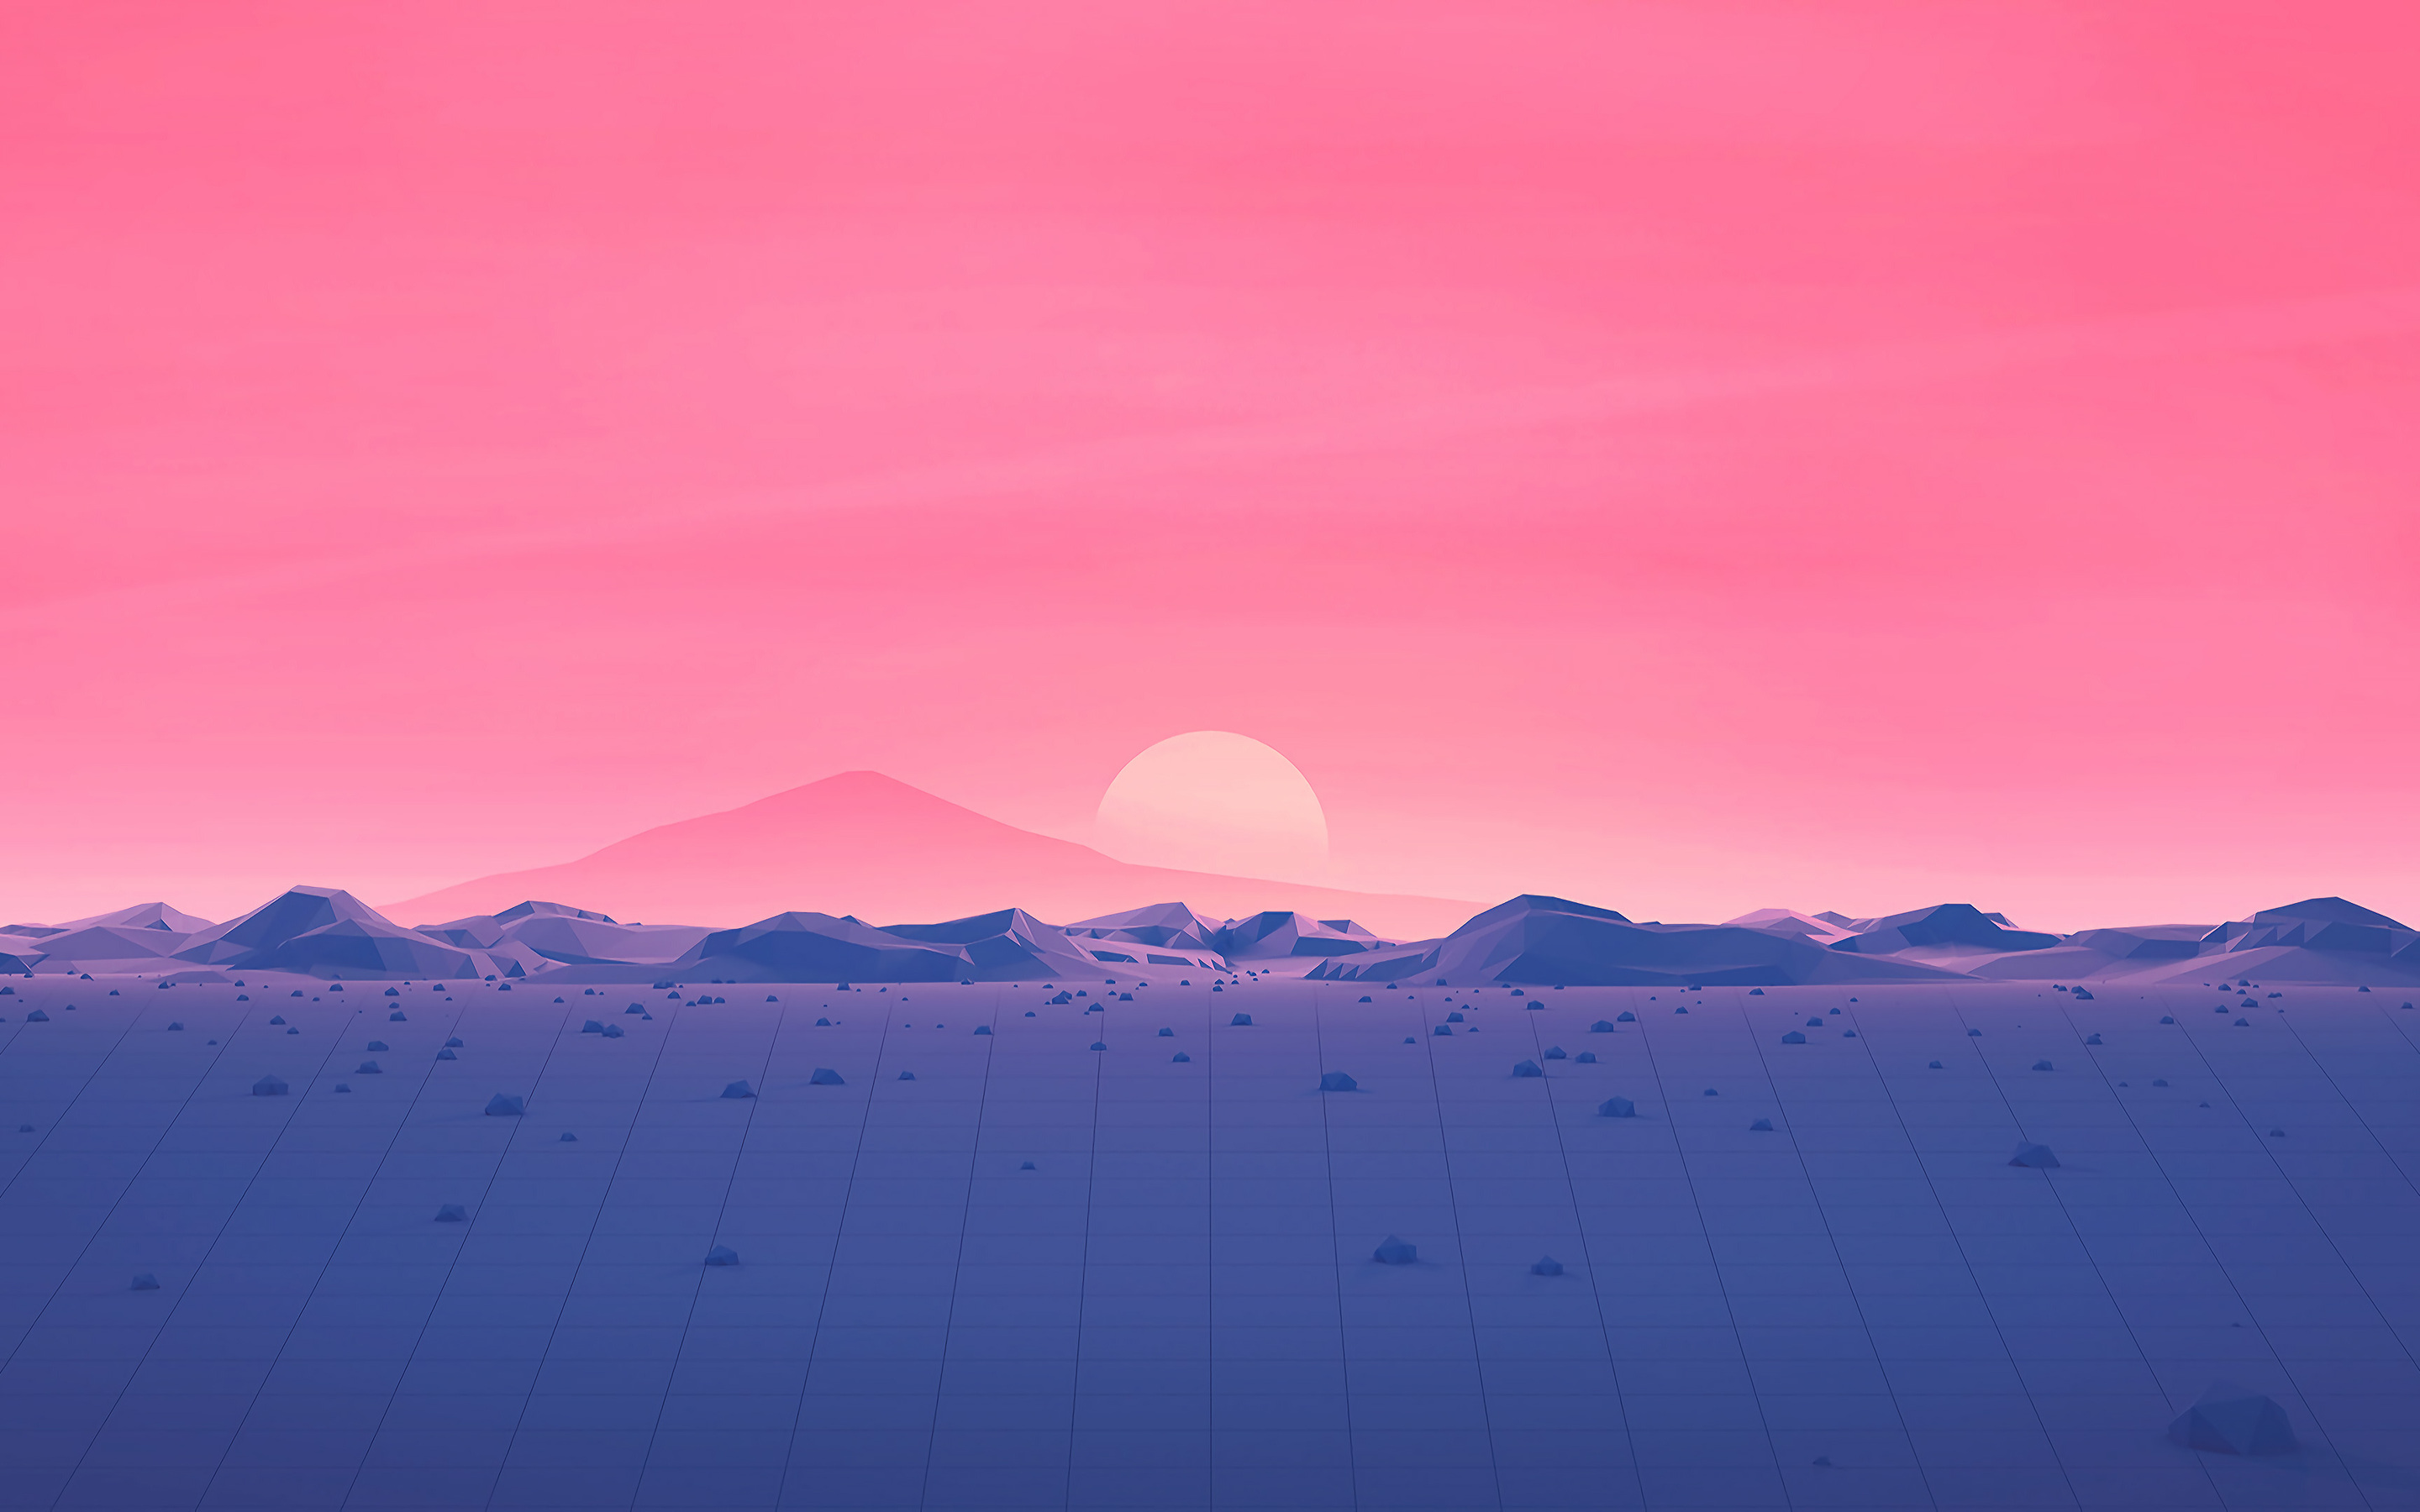 2880x1800 Hotizons Sunset Polygon Surface Mountains 4k Minimalism